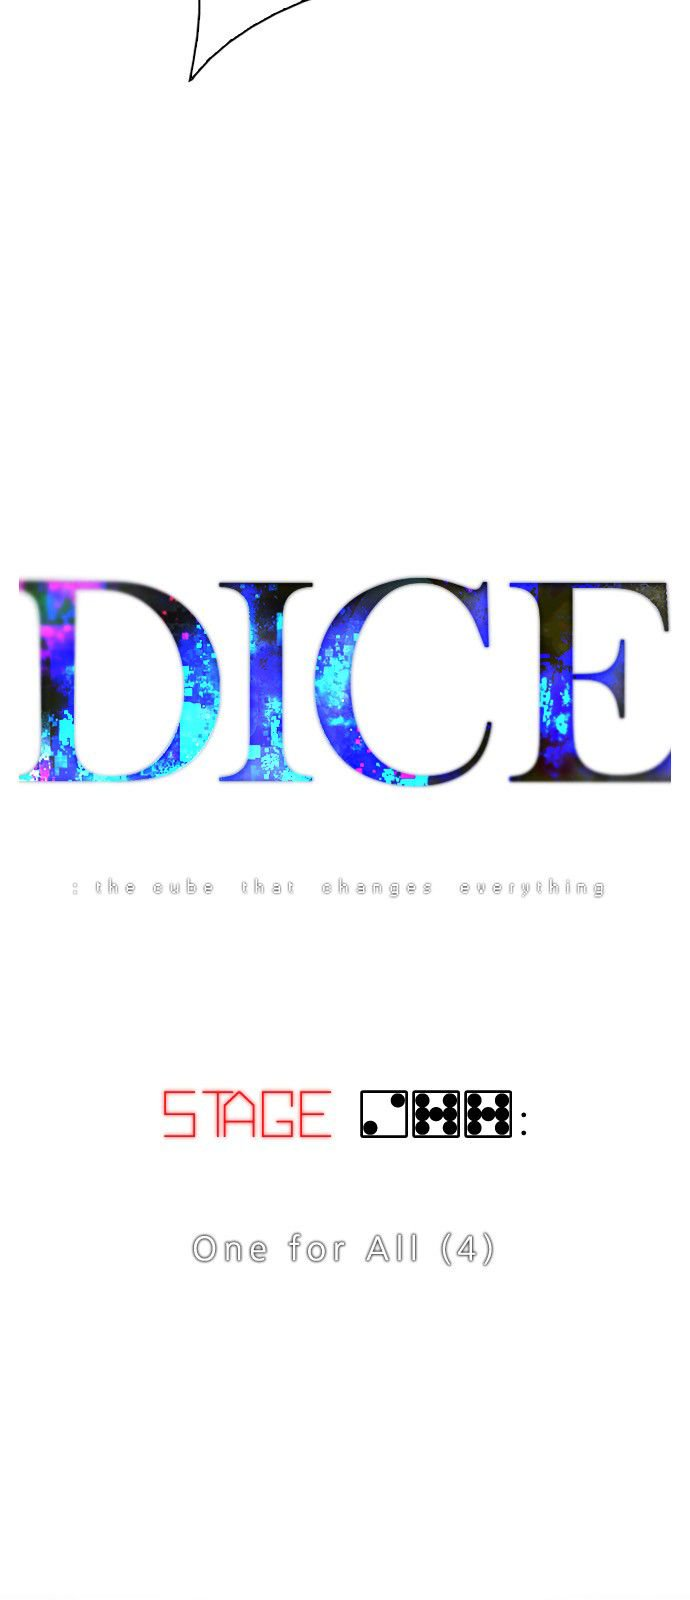 dice_the_cube_that_changes_everything_277_6